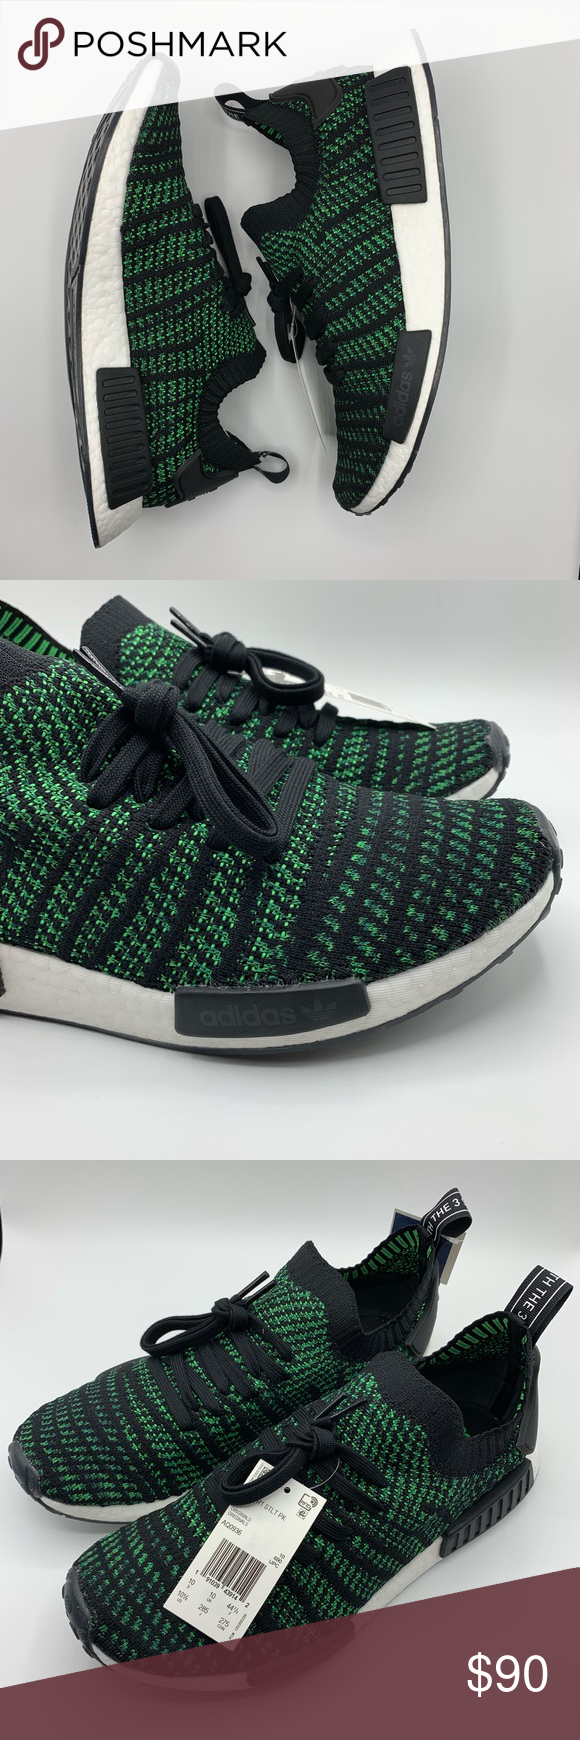 NO OFFERS Adidas NMD R1 STLT PK AQ0936 Green Black NWT